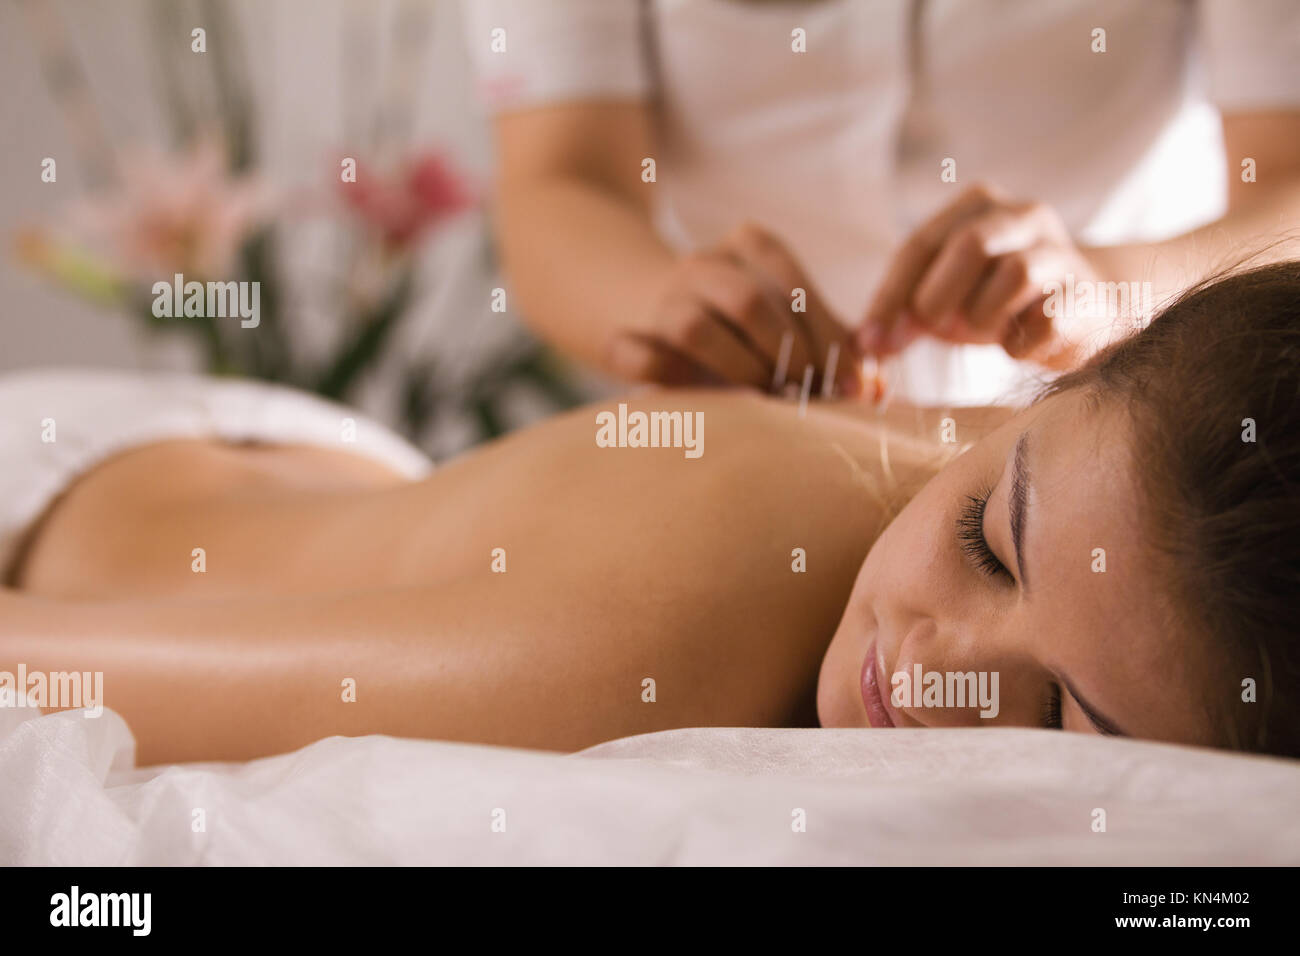 The doctor sticks needles into the woman's body on the acupuncture - close up - Stock Image